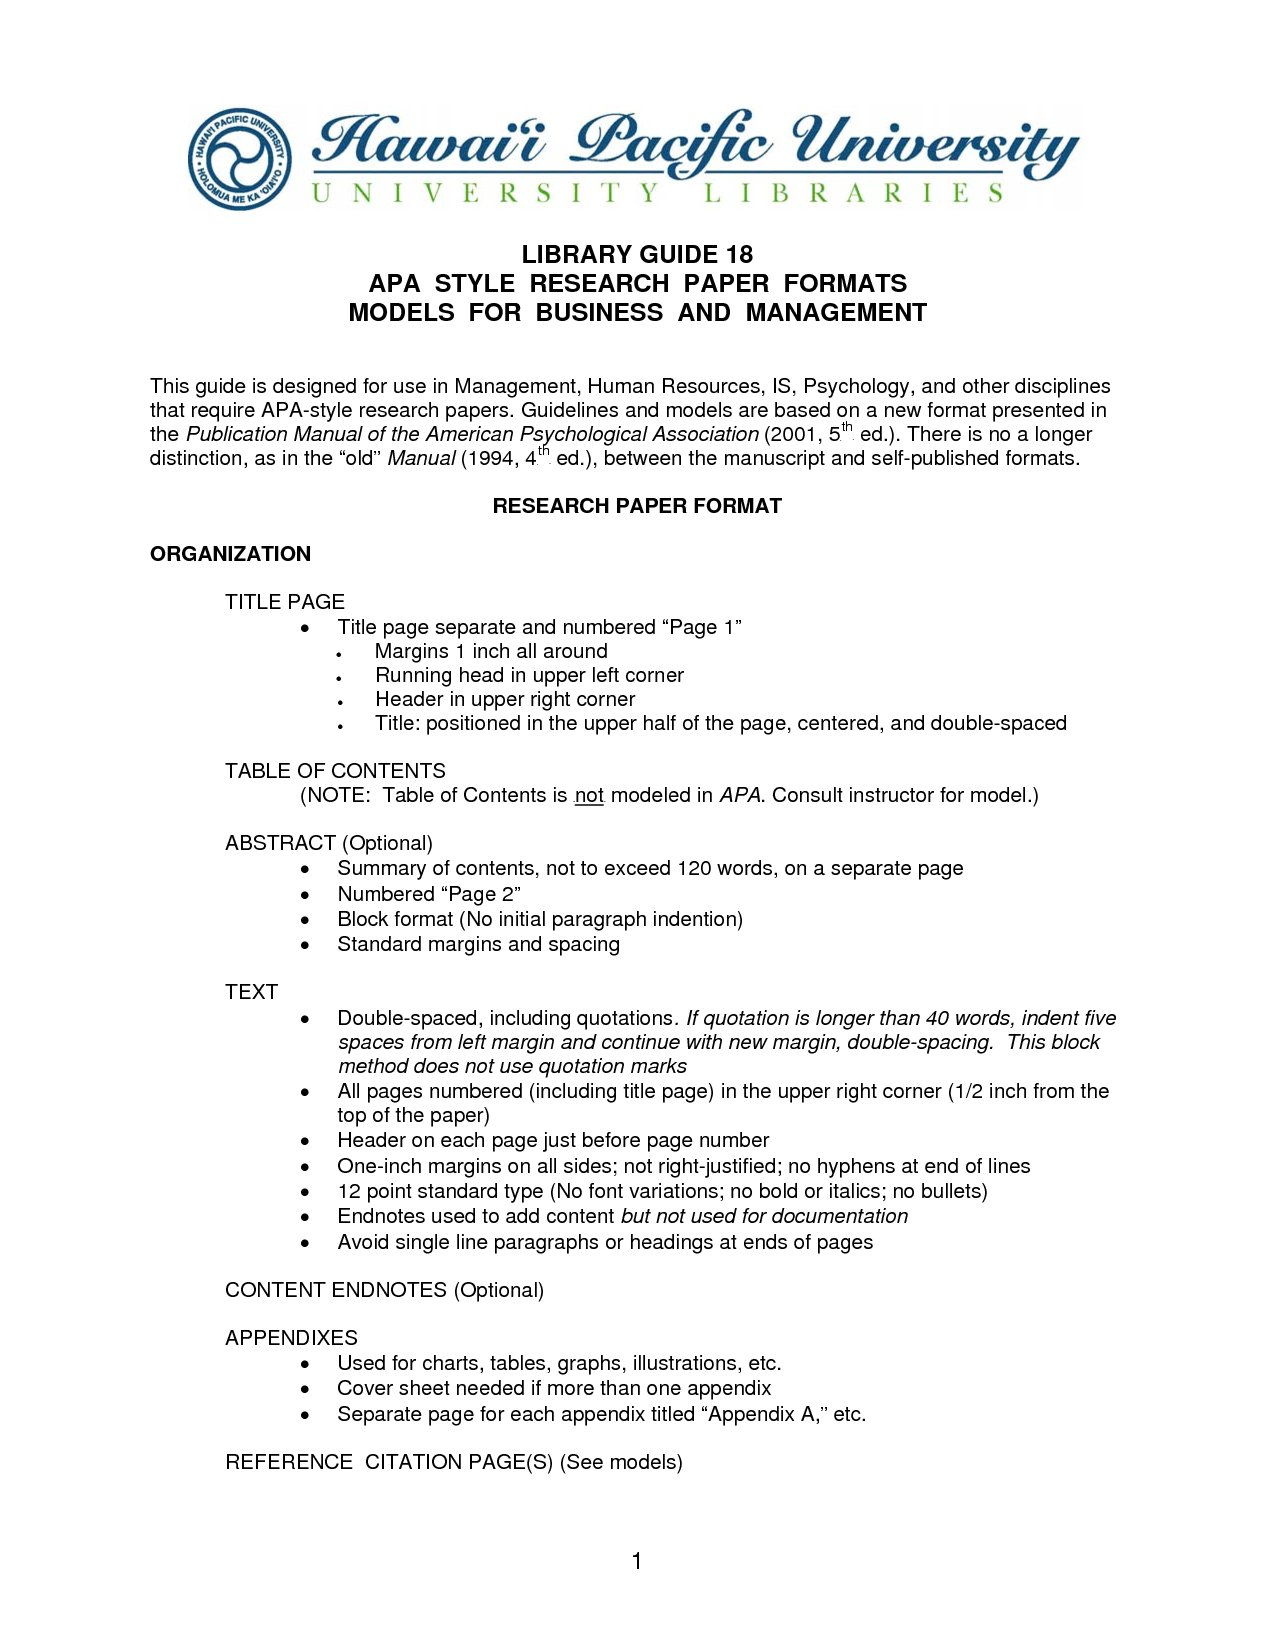 007 Business Management Topics For Research Paper Statement Example Template Unusual Pdf Techniques Full